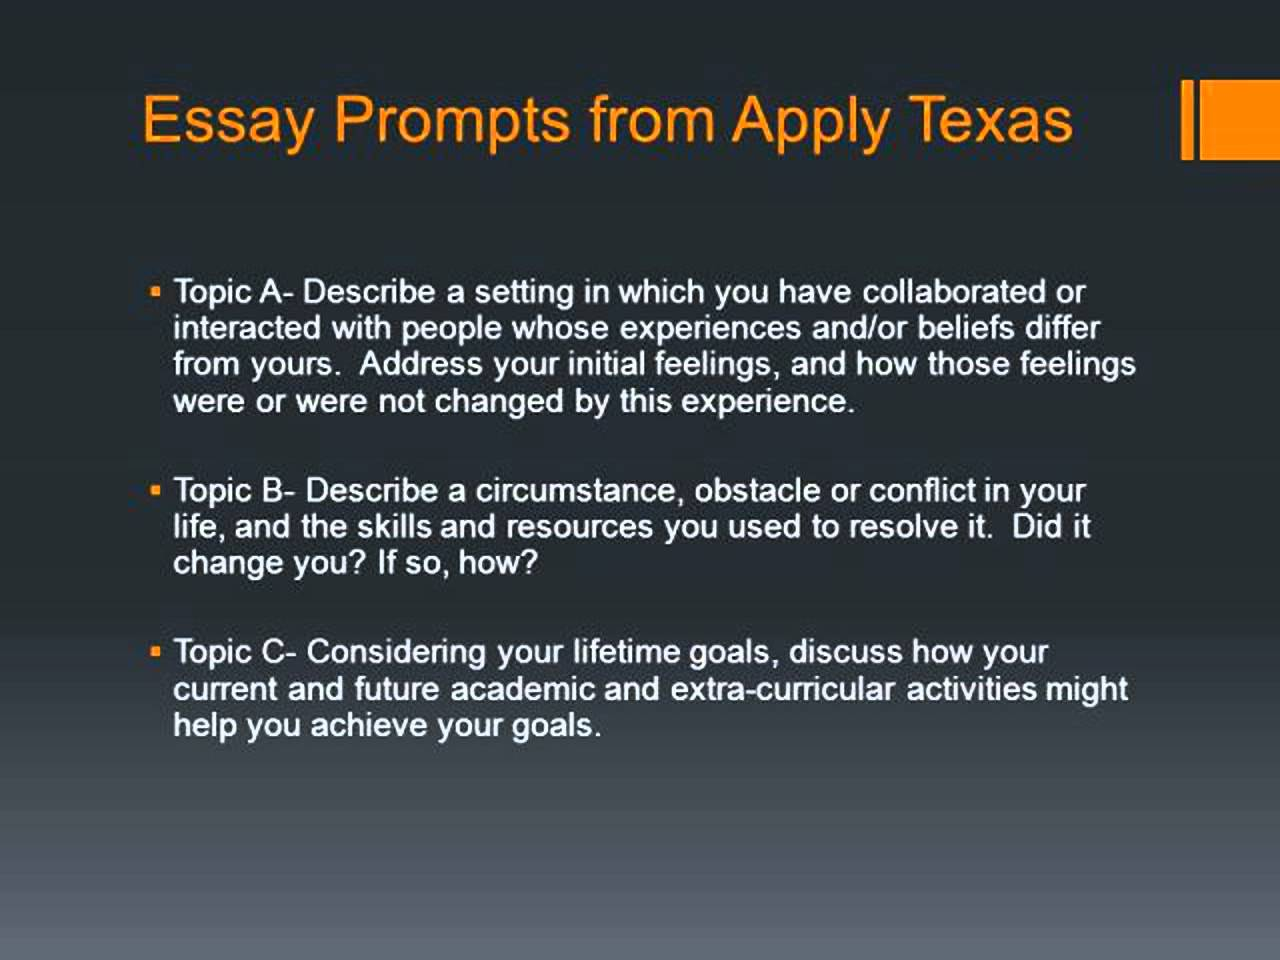 001 Essay Example Apply Texas Prompts Youtube Topic Examples Maxresde Archaicawful Topics 2018-19 C B Full